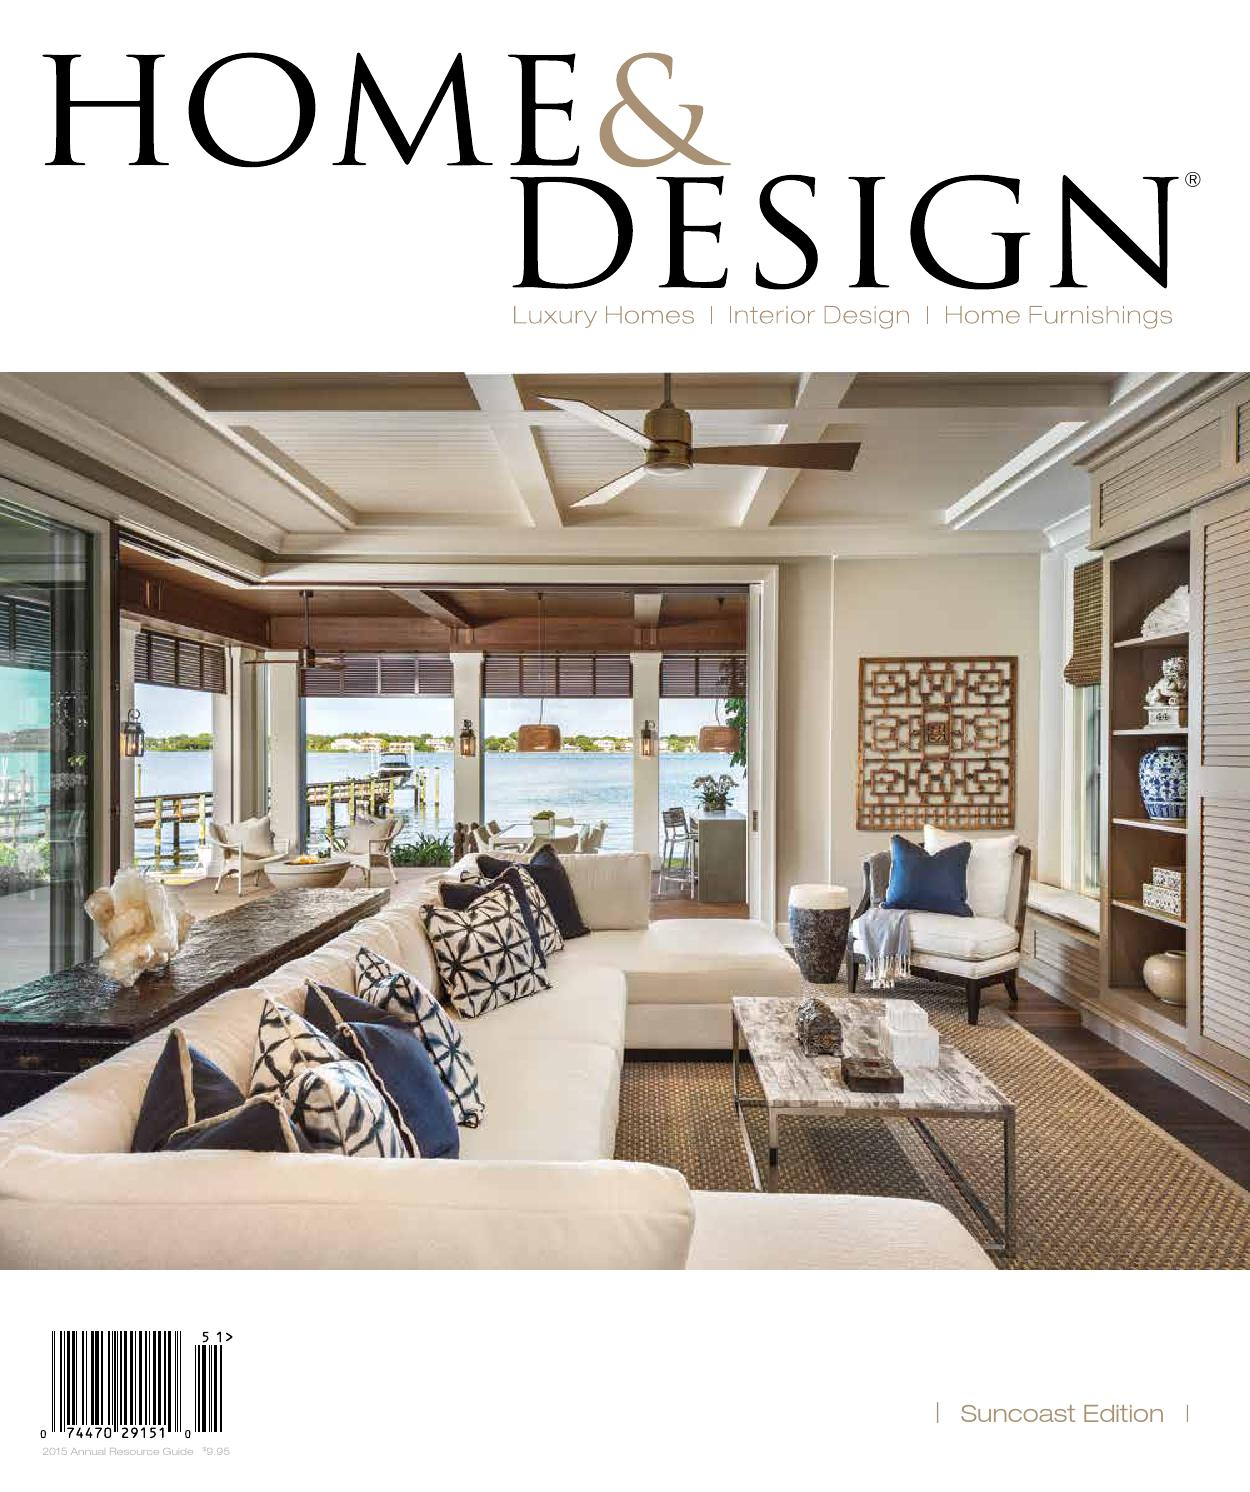 Home design magazine annual resource guide 2015 for Home decor interior design